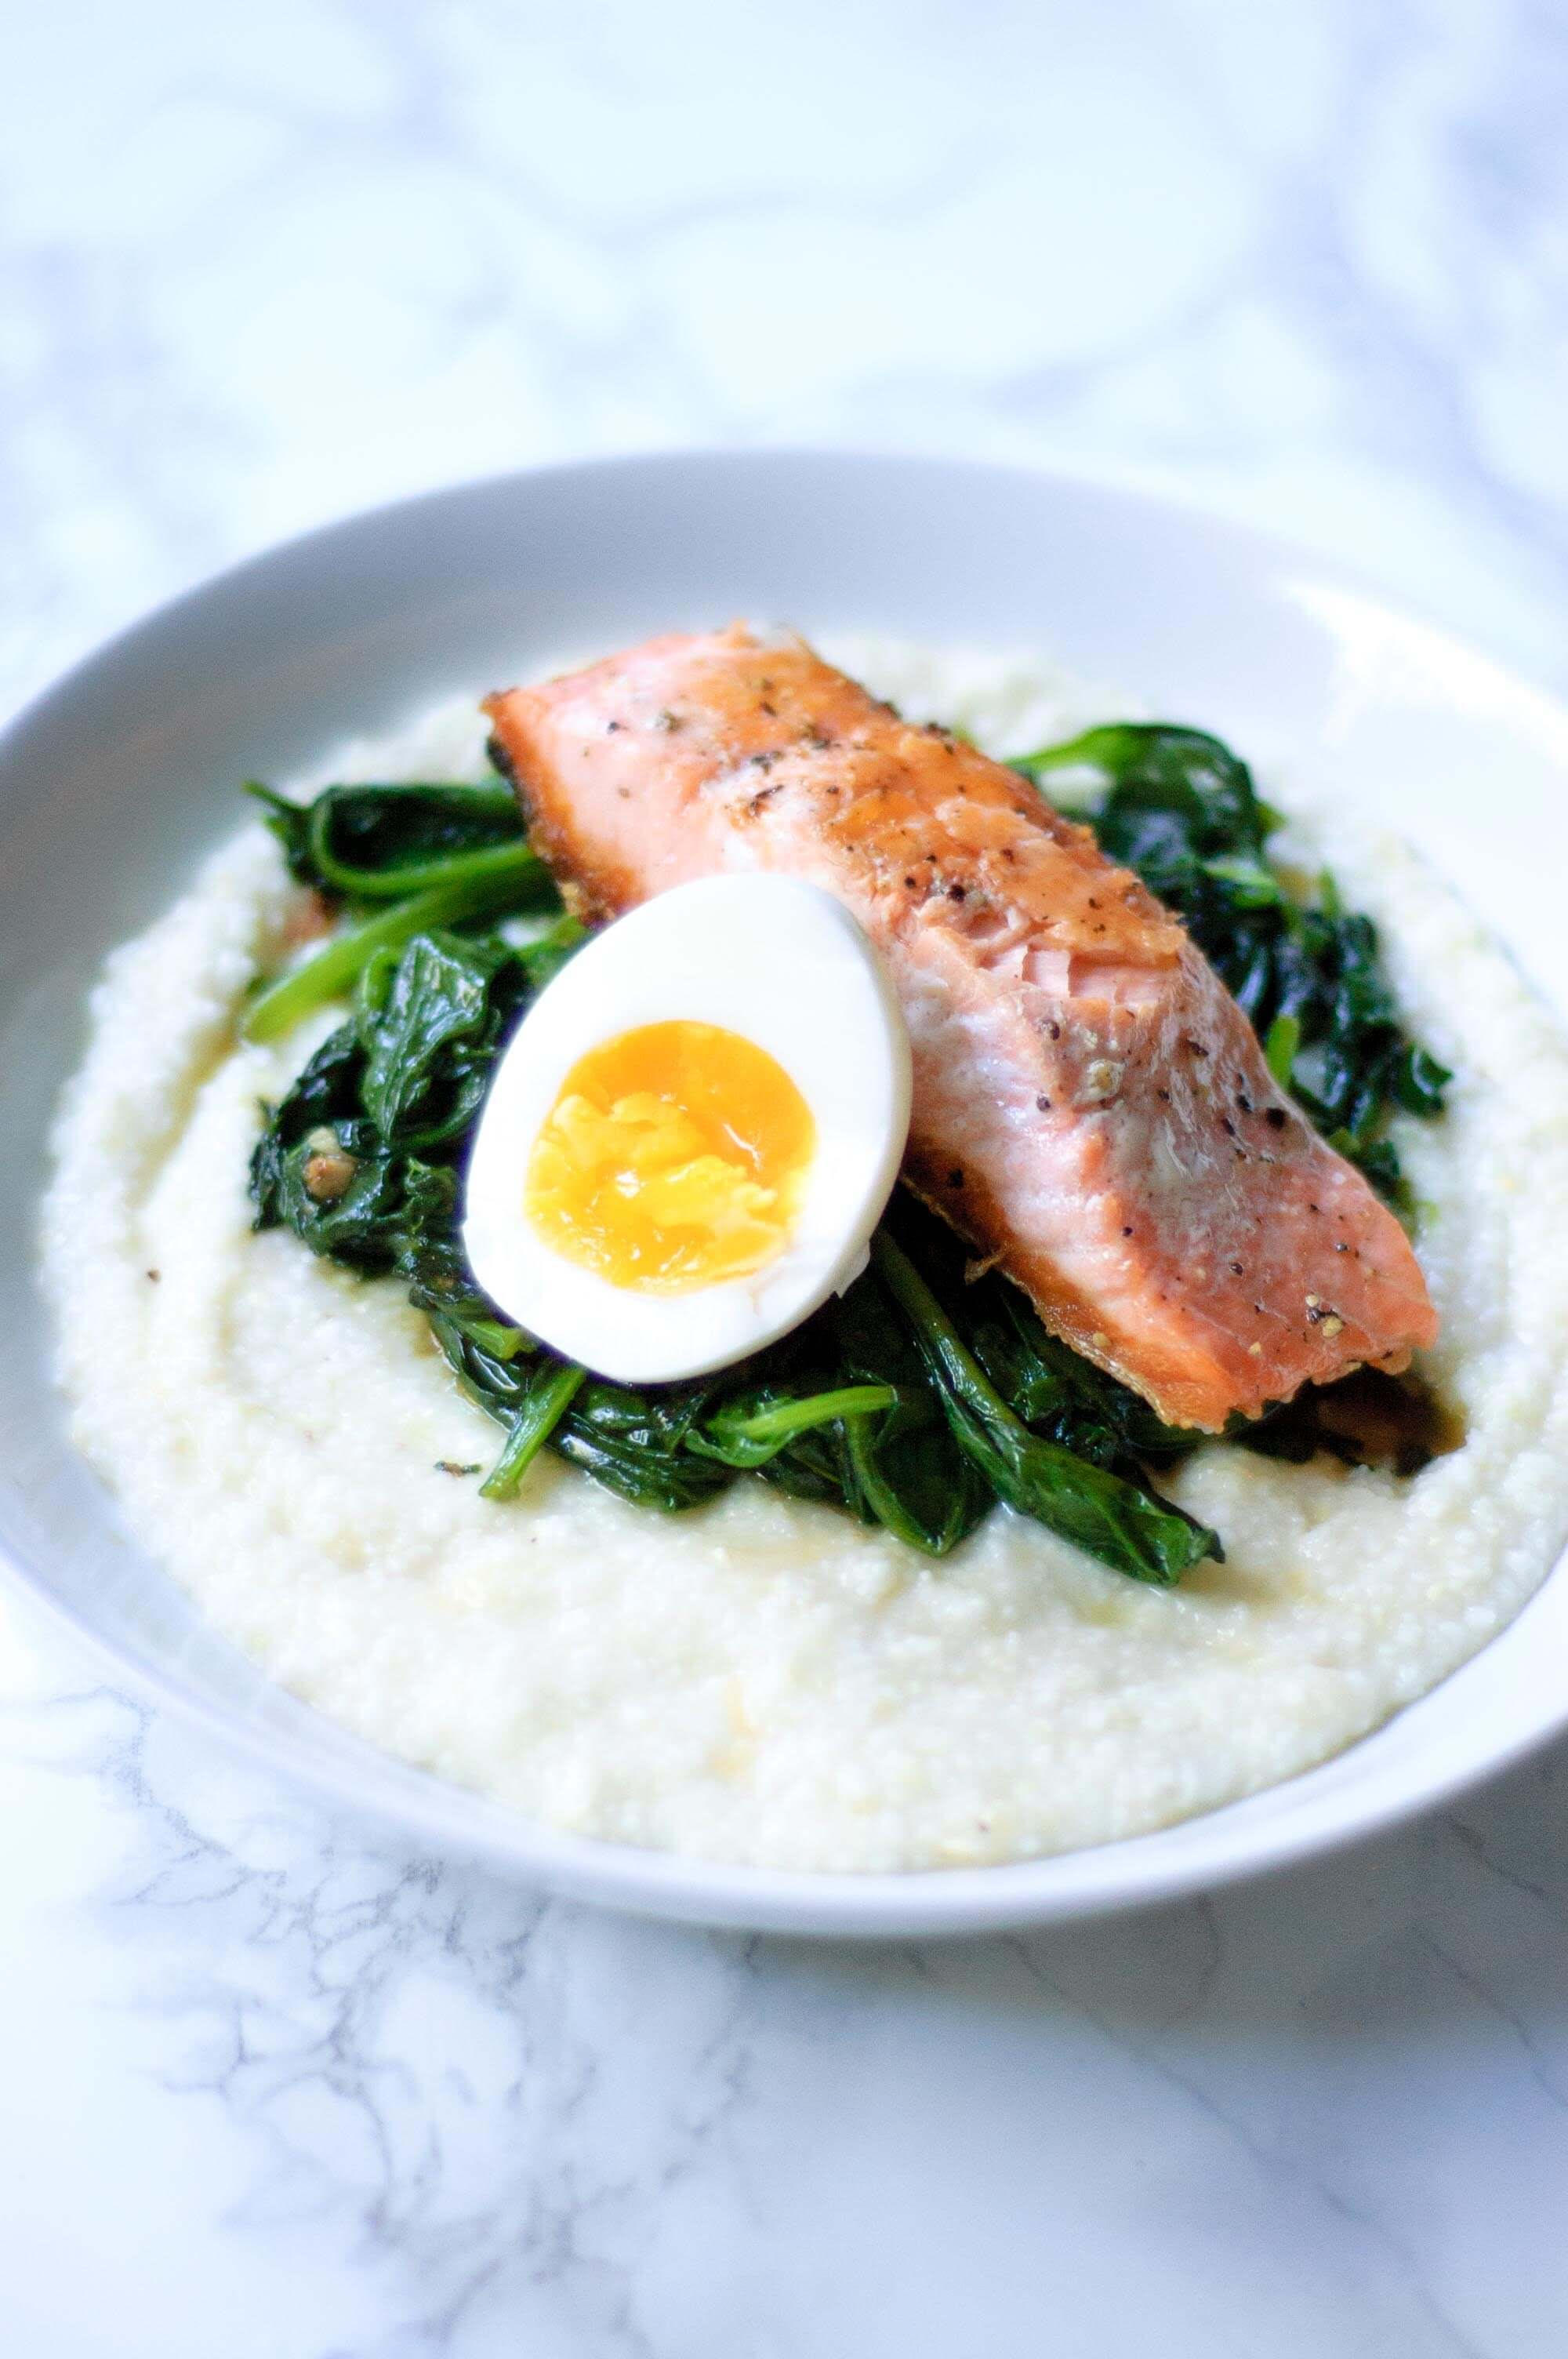 half of a boiled egg next to a serving of salmon with spinach and grits in a white bowl.